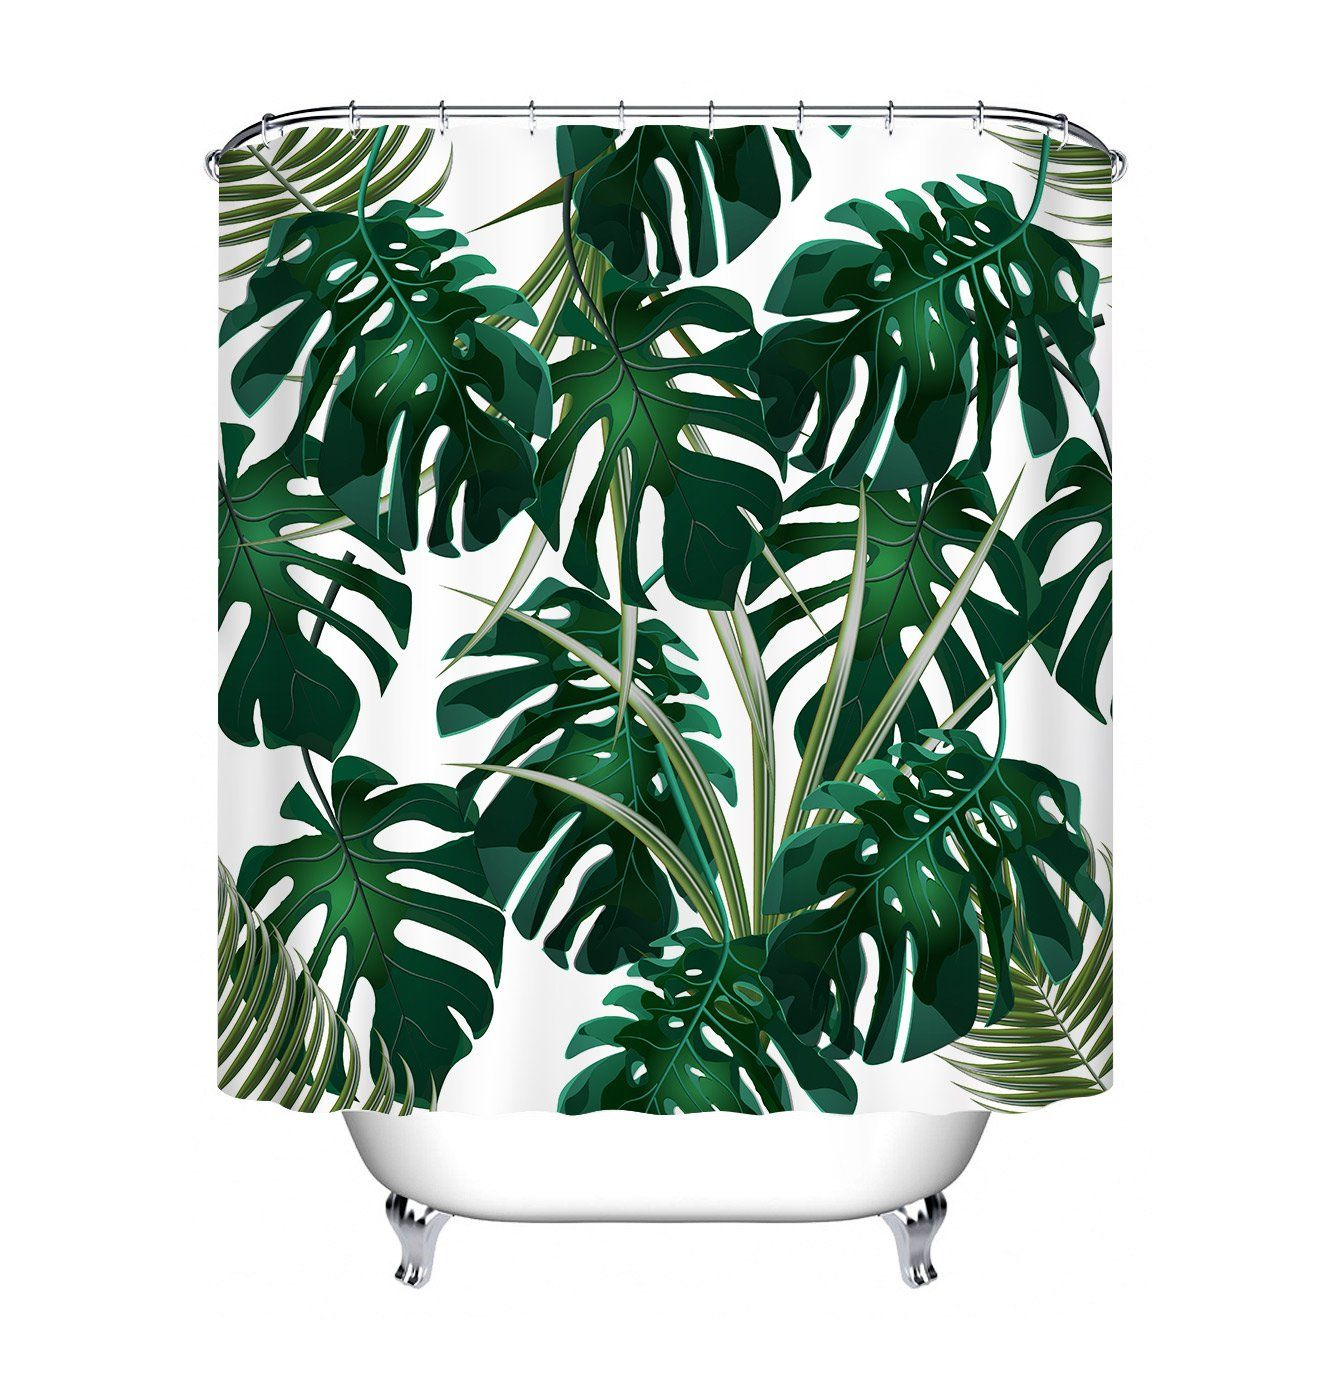 Dark Green Tropical Jungle Decor Shower Curtain For Bathroom By Lb Hawaiian Forest Palm Leaf Bath Curtain Mildew Resis Bathroom Curtains Curtains Curtain Decor